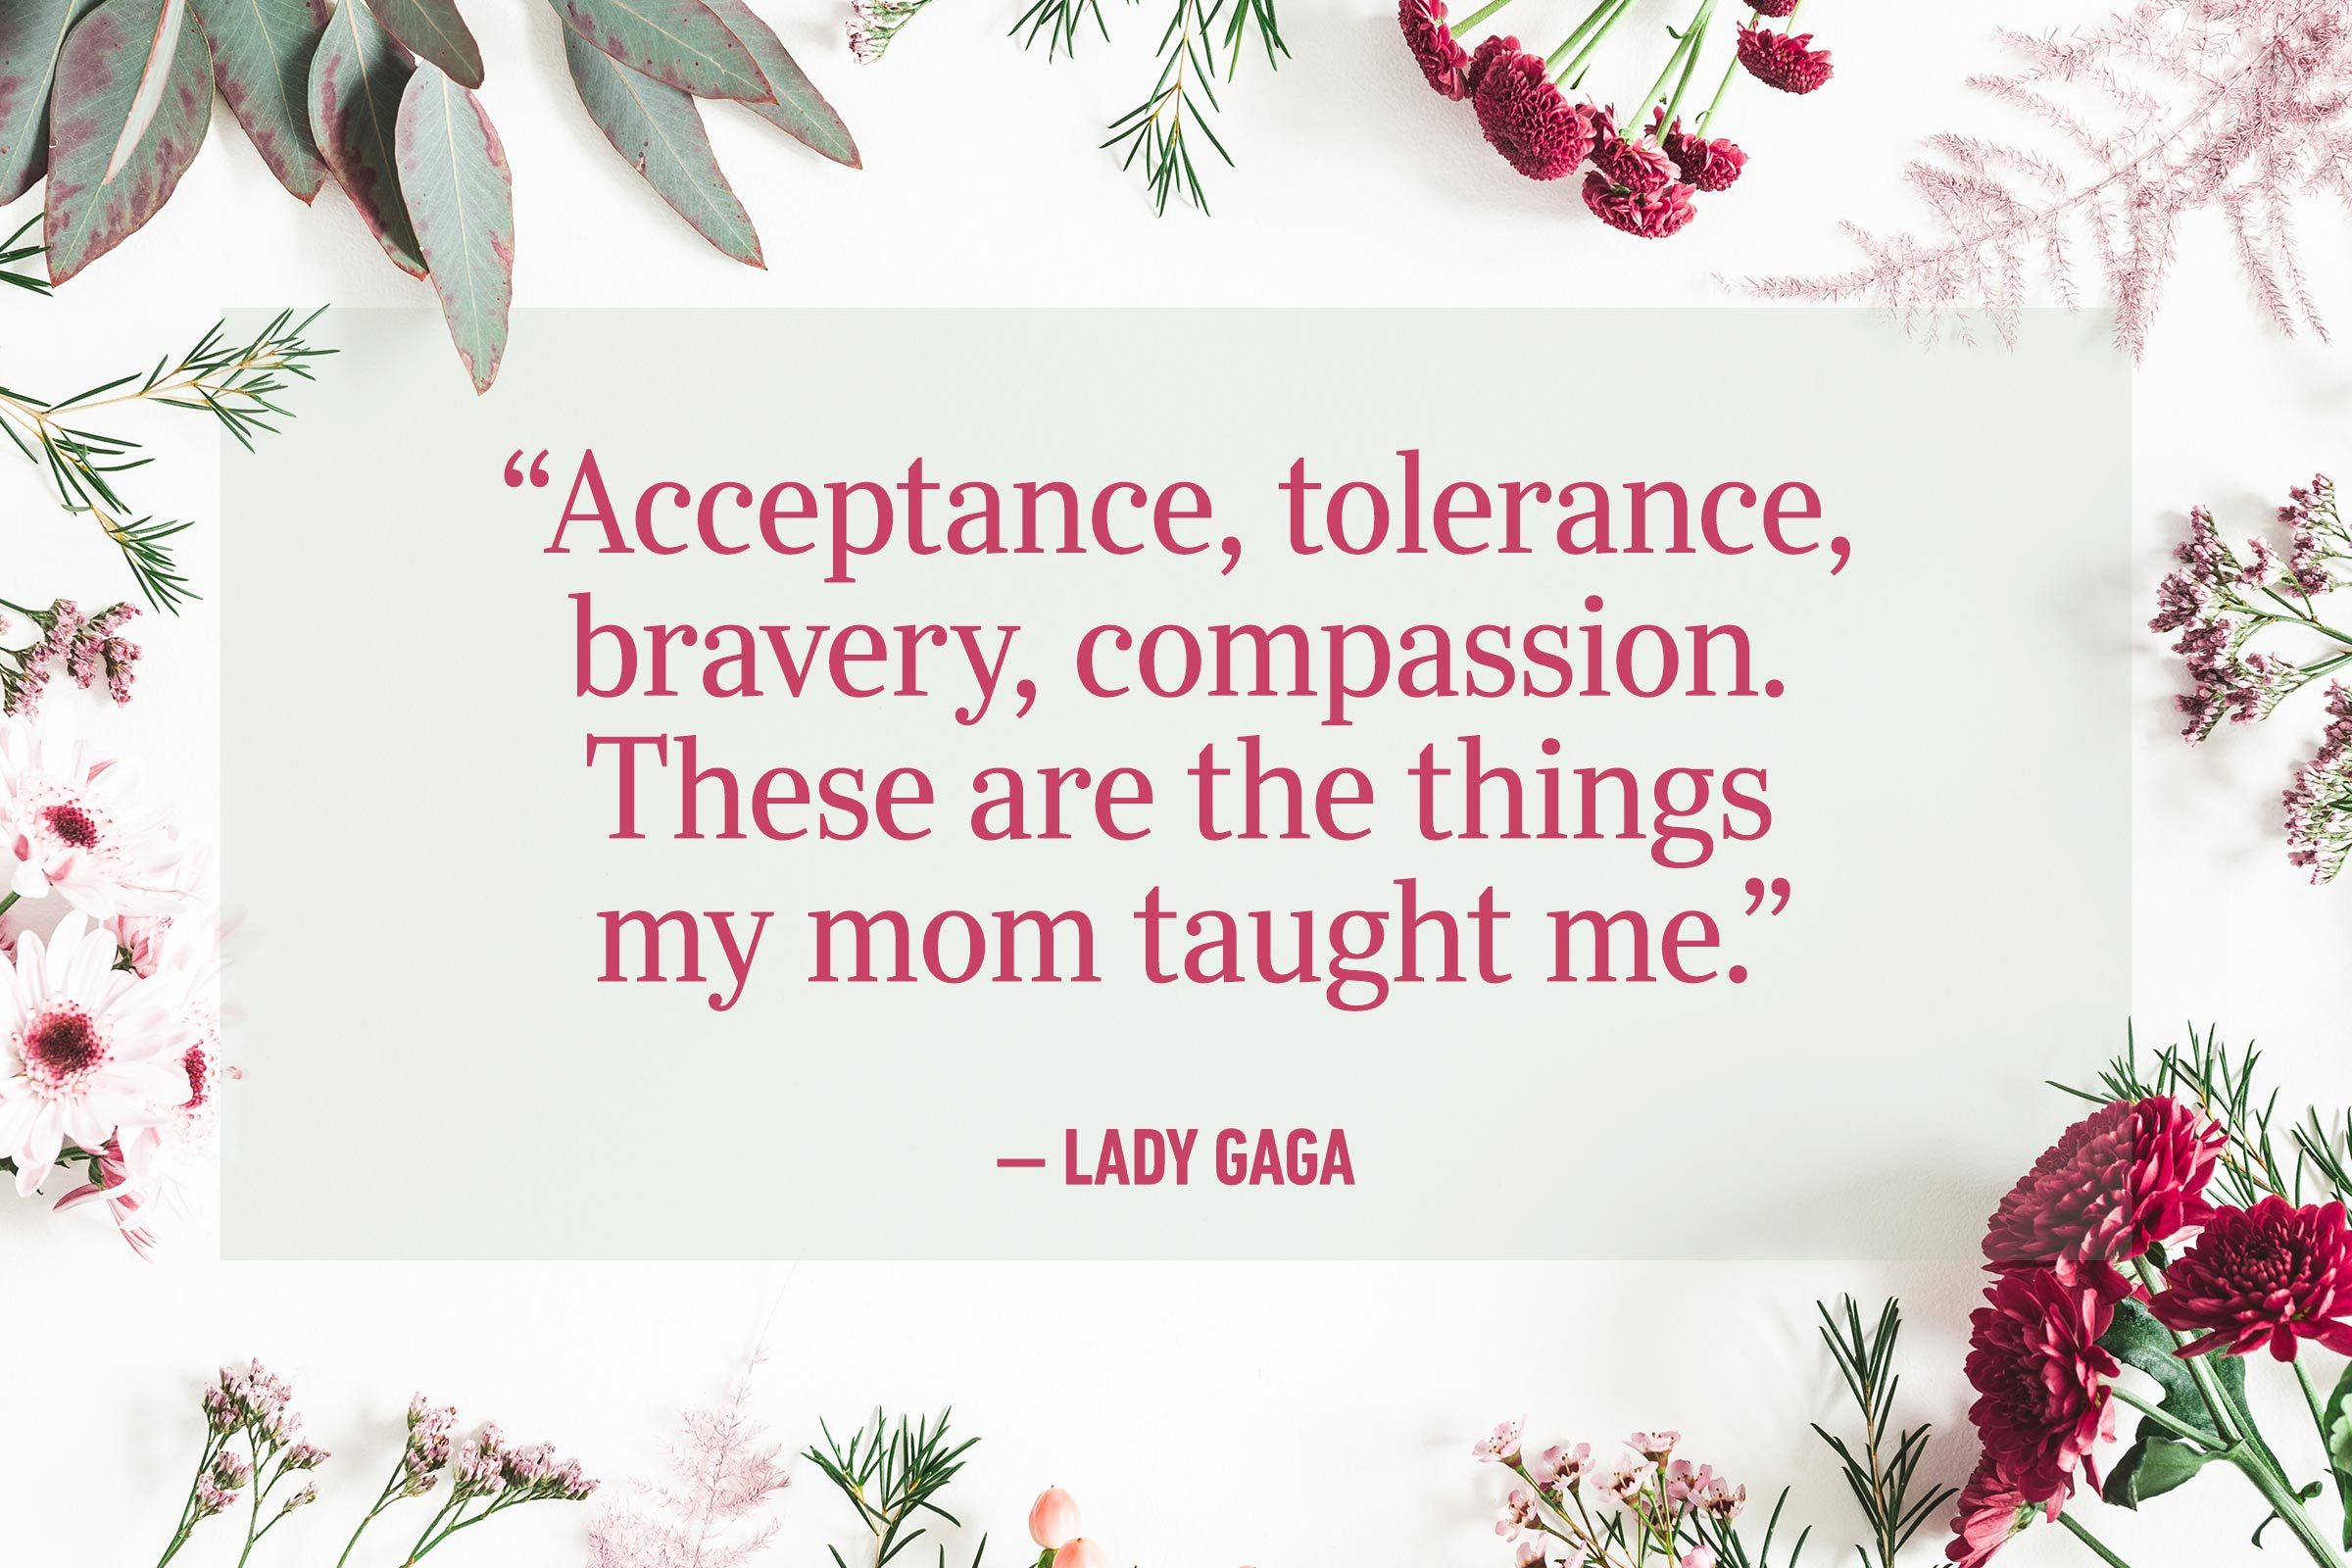 """Acceptance, tolerance, bravery, compassion. These are the things my mom taught me."" —Lady Gaga"